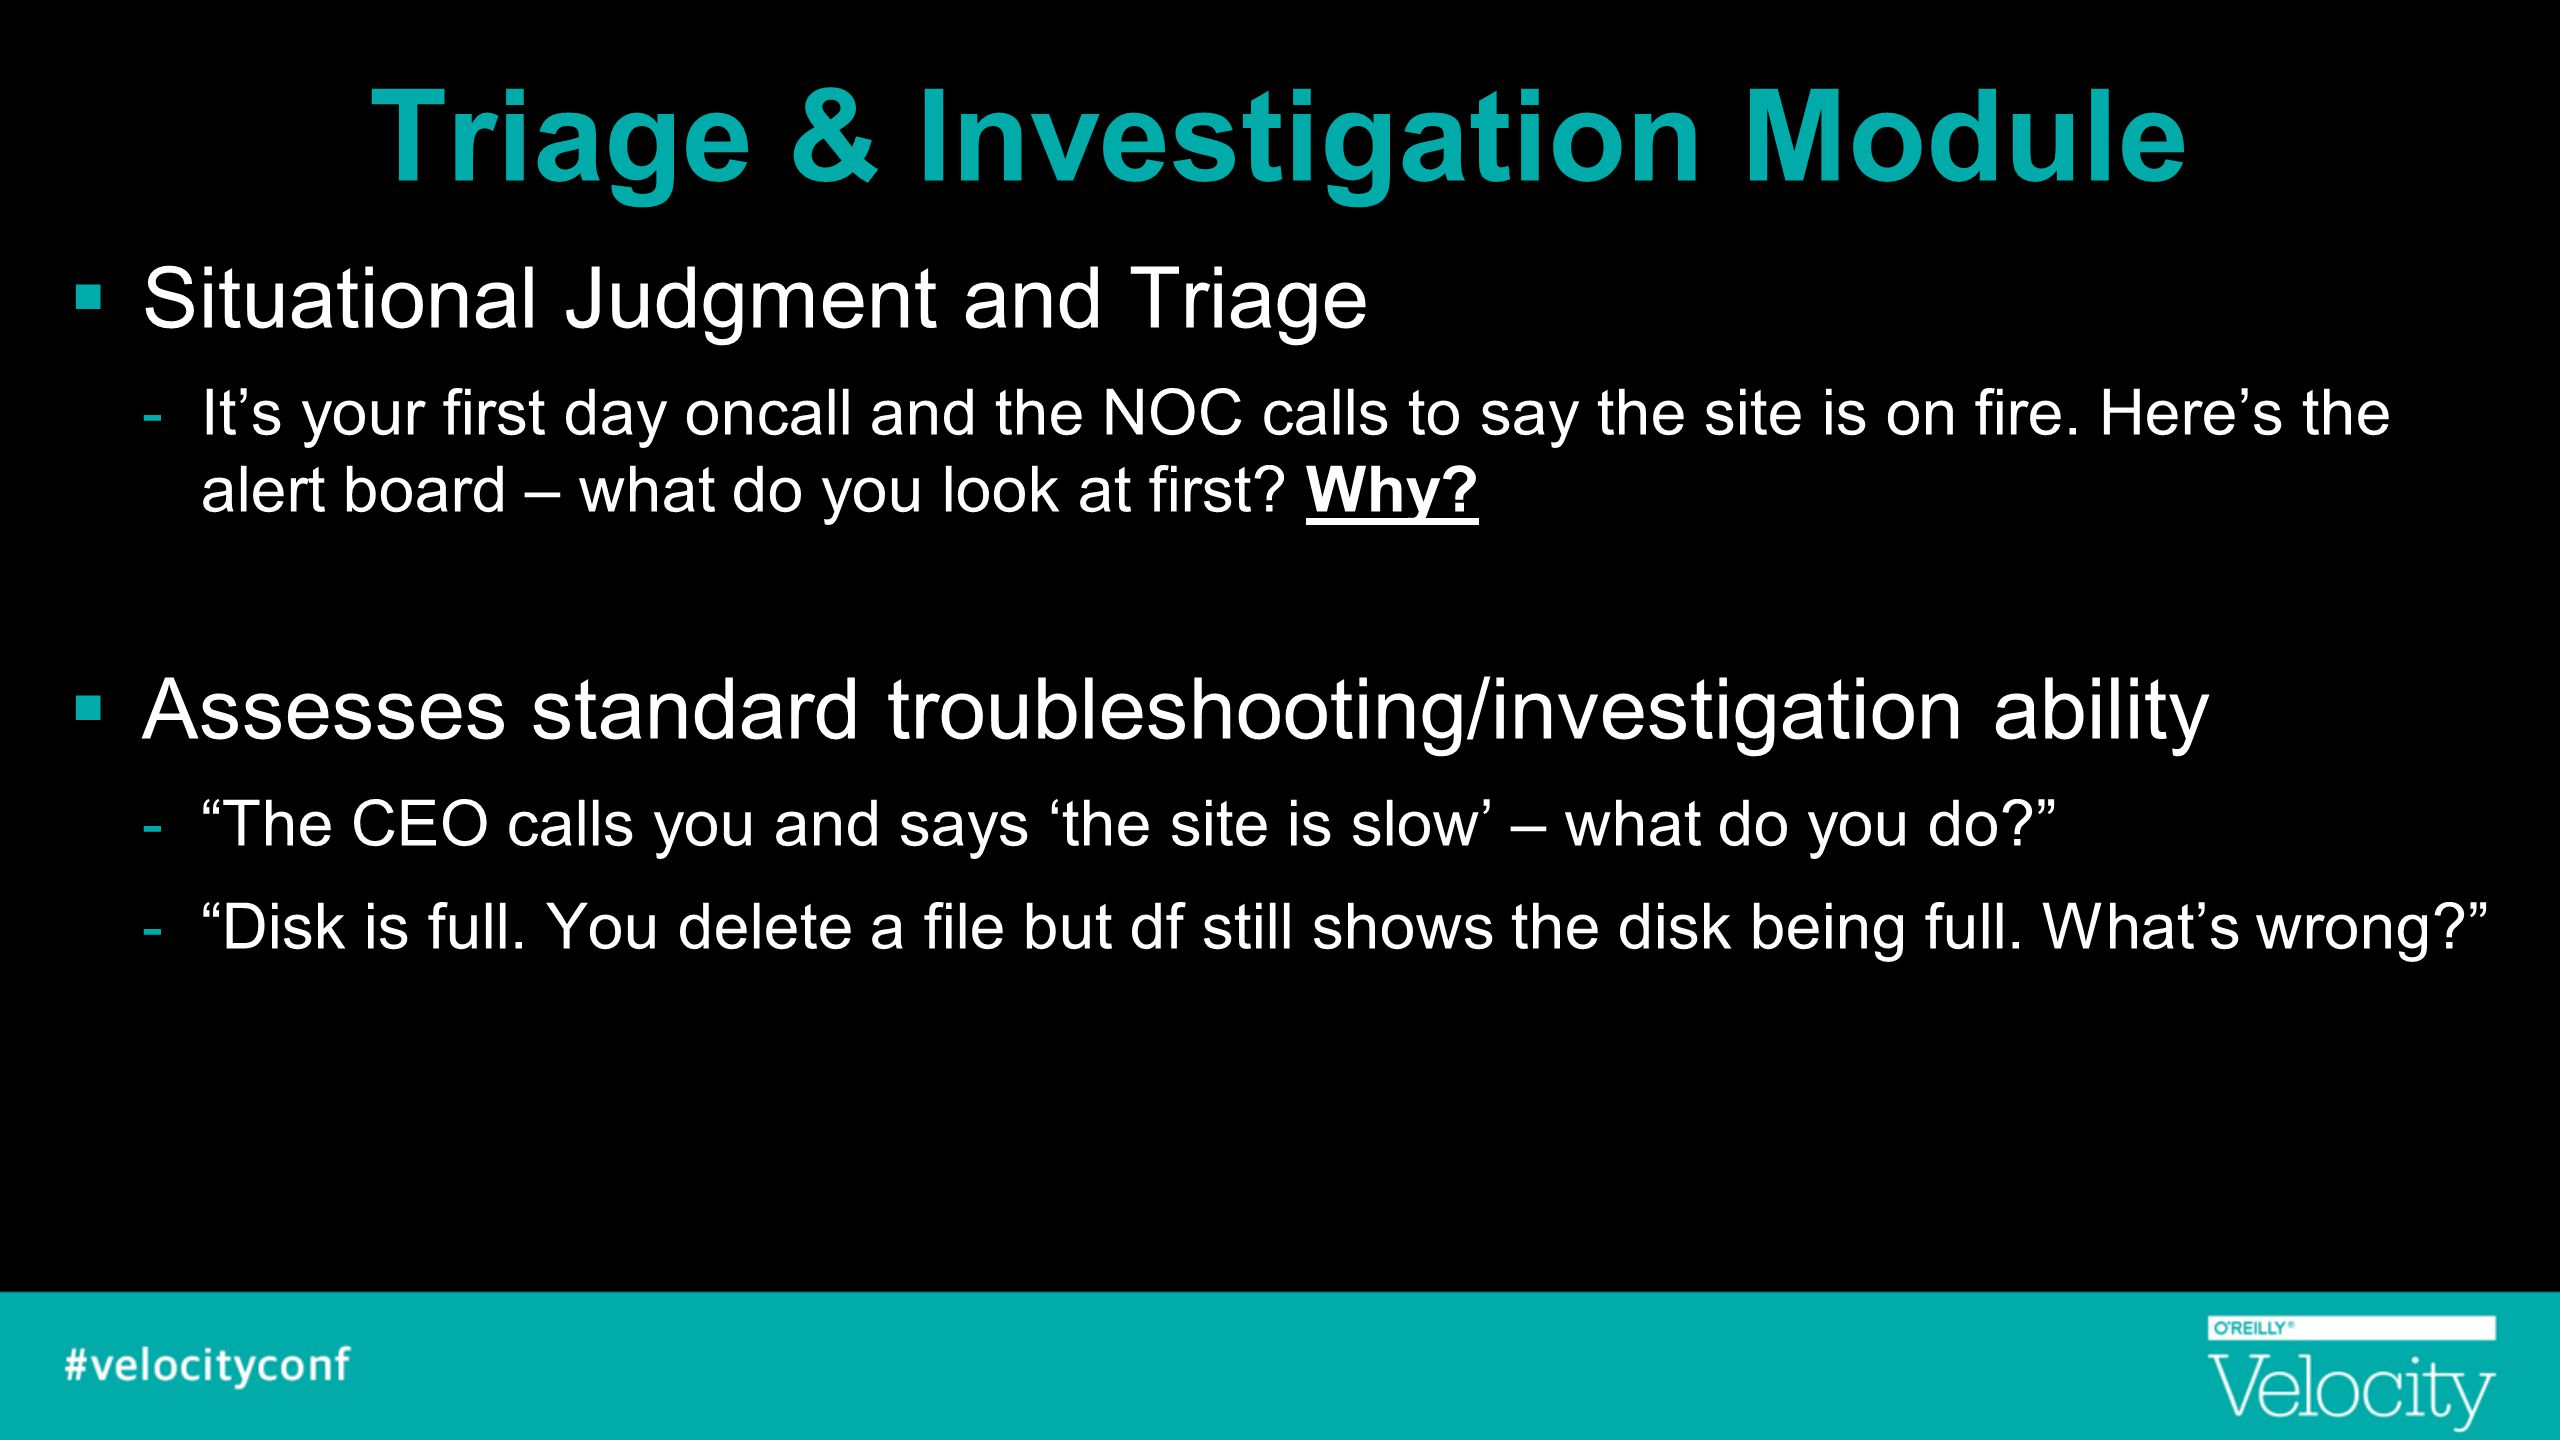 Triage & Investigation Module